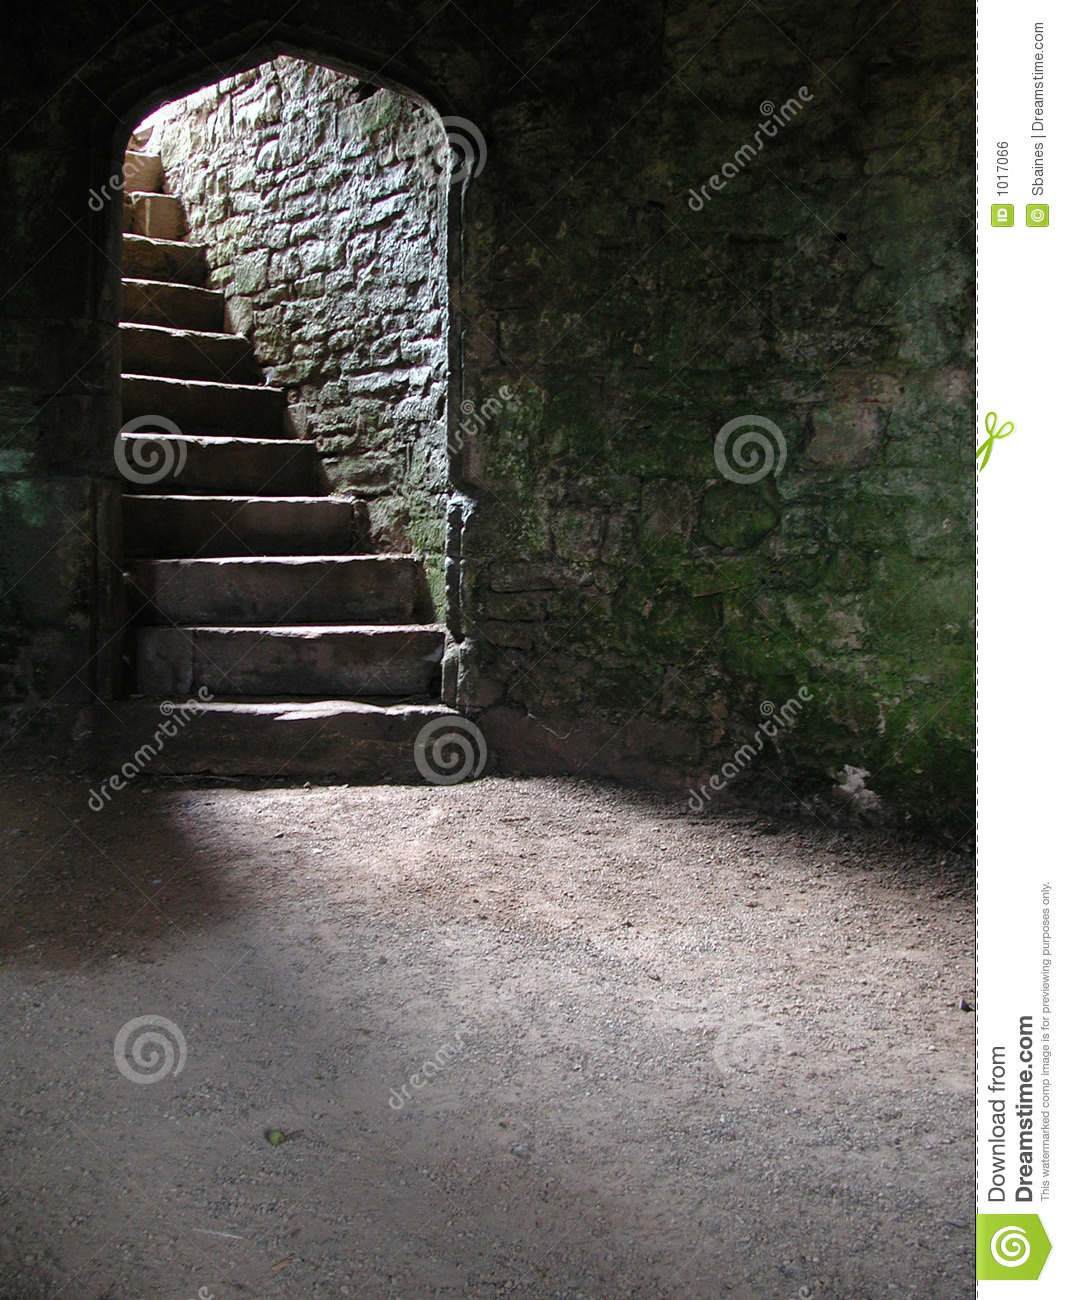 Stairway In Castle Cellar/Dungeon Royalty Free Stock Image.